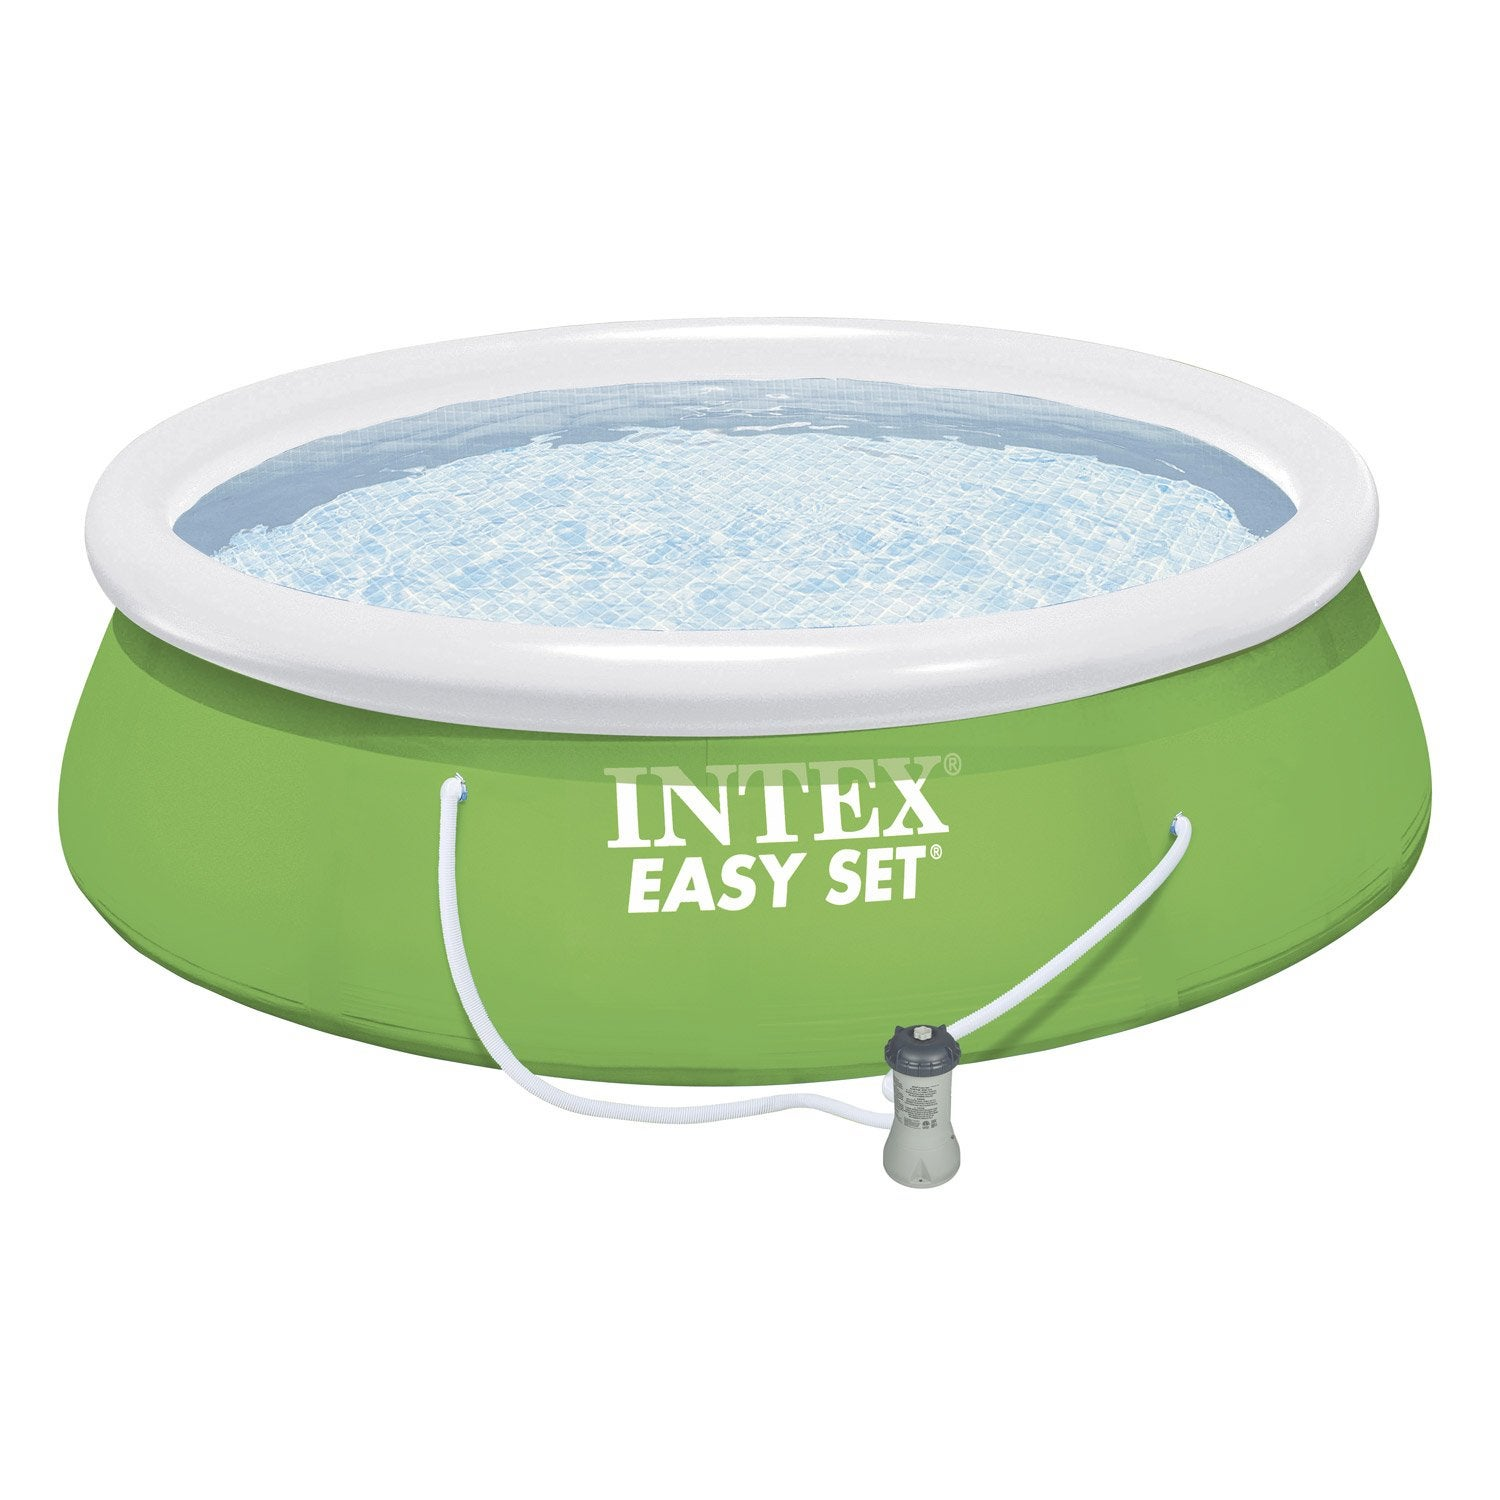 Piscine hors sol autoportante gonflable easy set intex for Piscine ronde intex